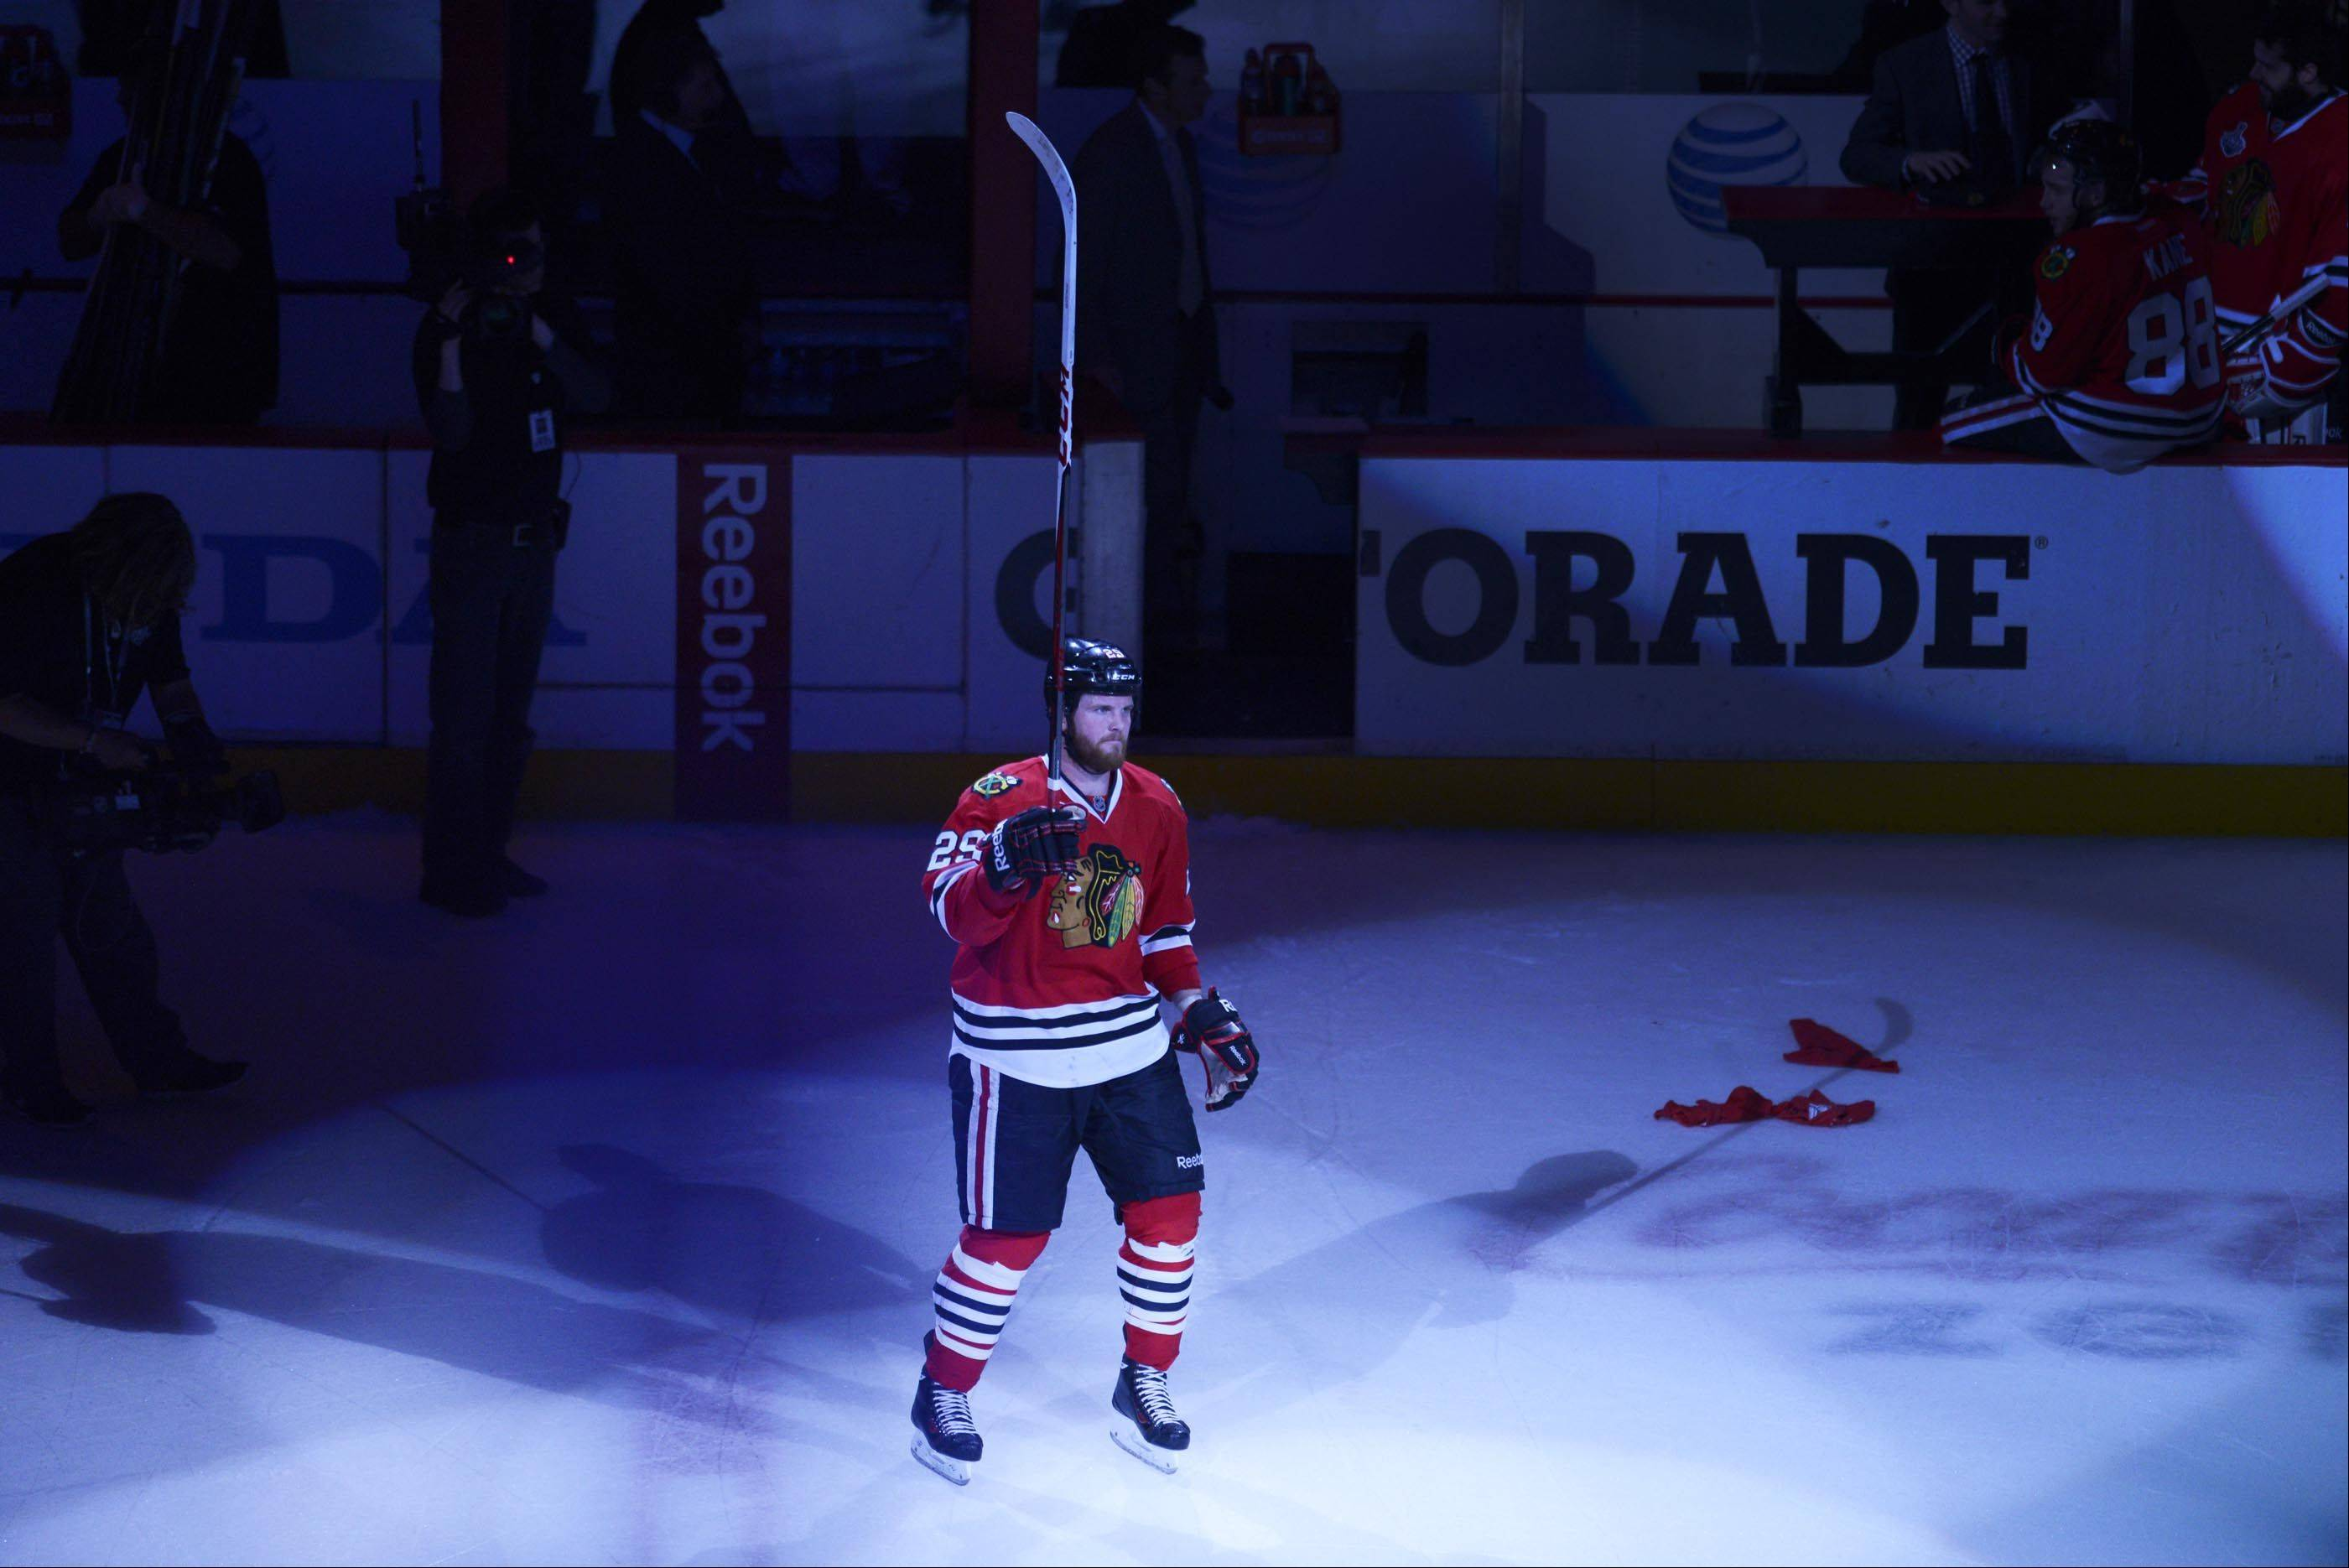 Blackhawks left wing Bryan Bickell is a free agent and one of the top priorities for the Hawks, according to general manager Stan Bowman. Bickell had 9 goals in the Stanley Cup playoffs, which was second on the team behind Patrick Sharp.